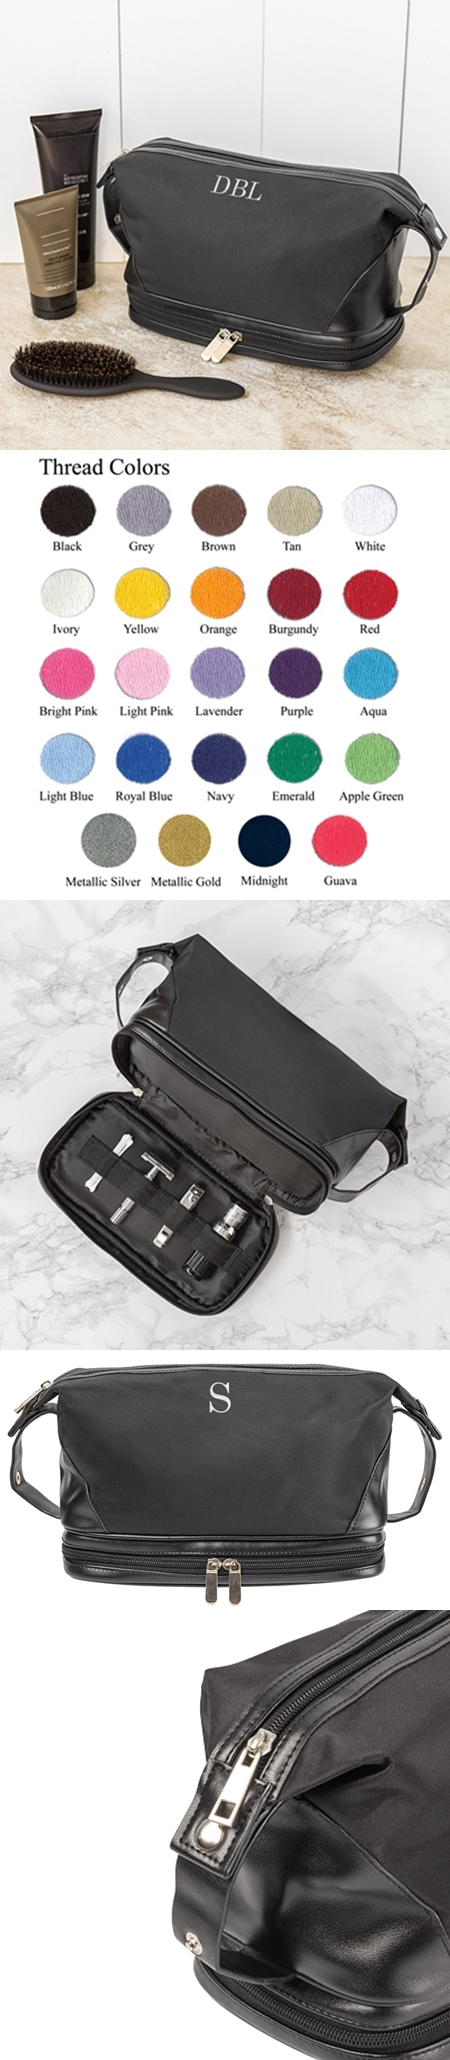 Personalizable Black Microfiber Toiletry Bag with Bottom Compartment